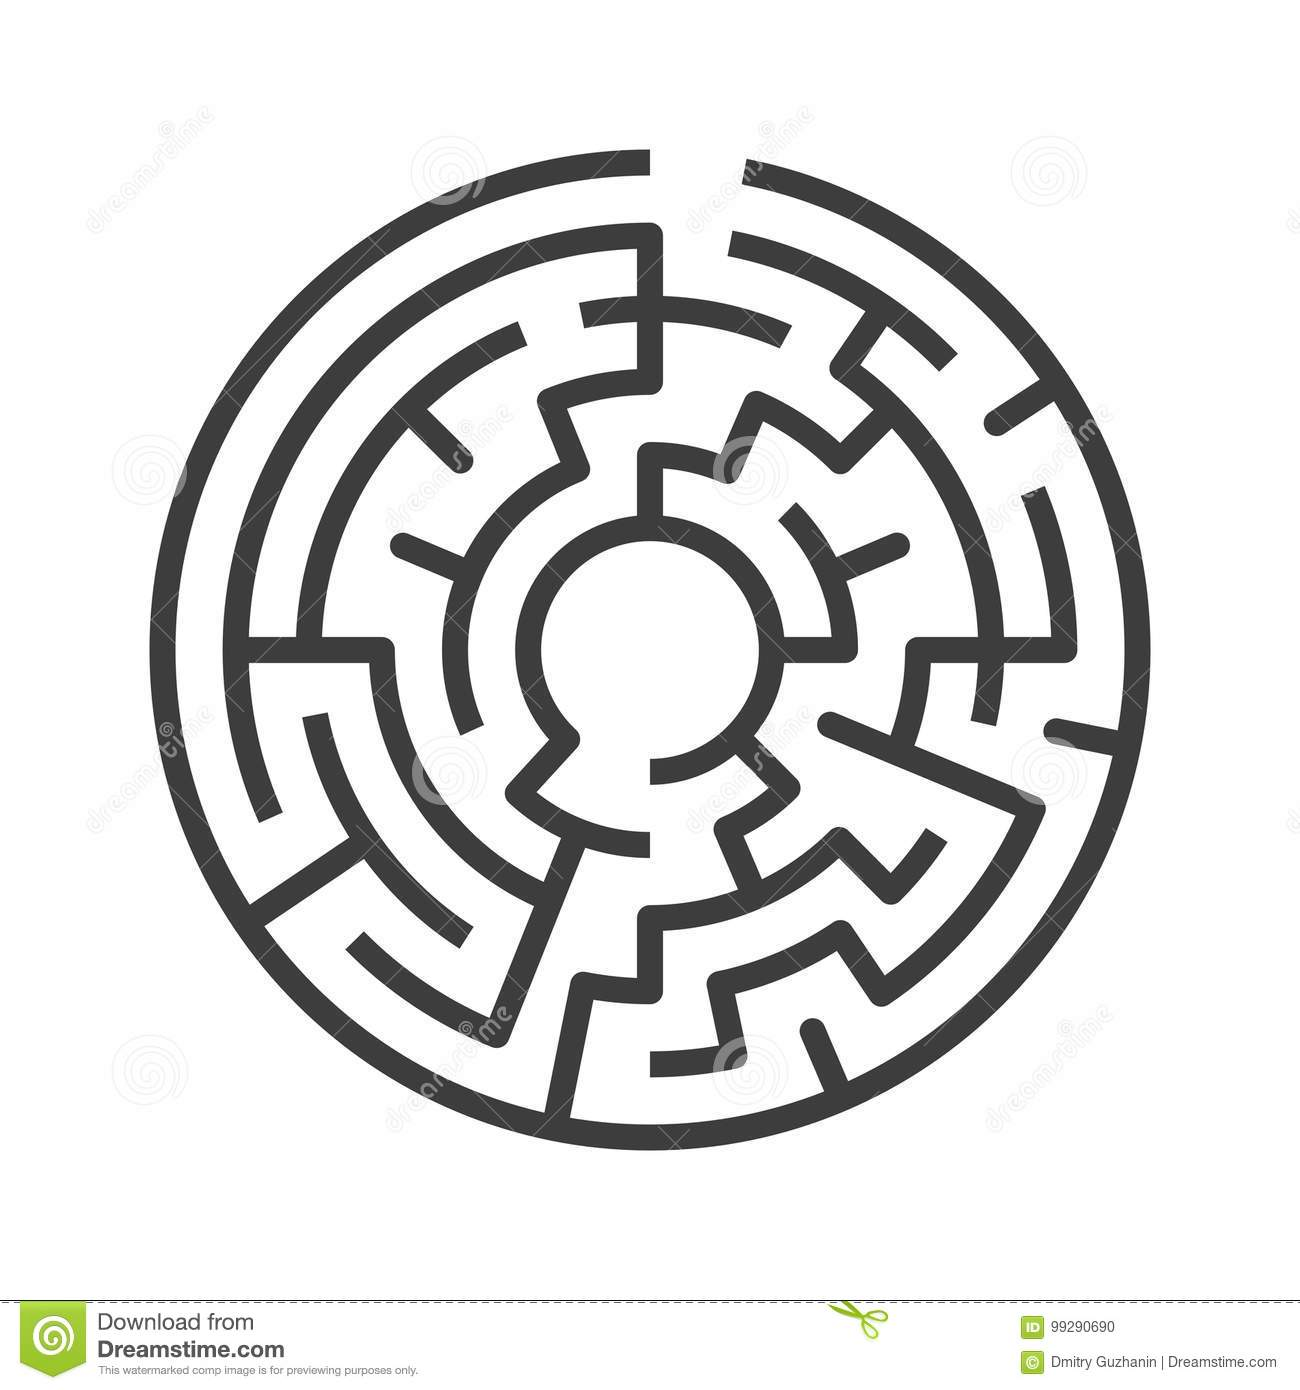 Circular maze isolated stock vector. Illustration of